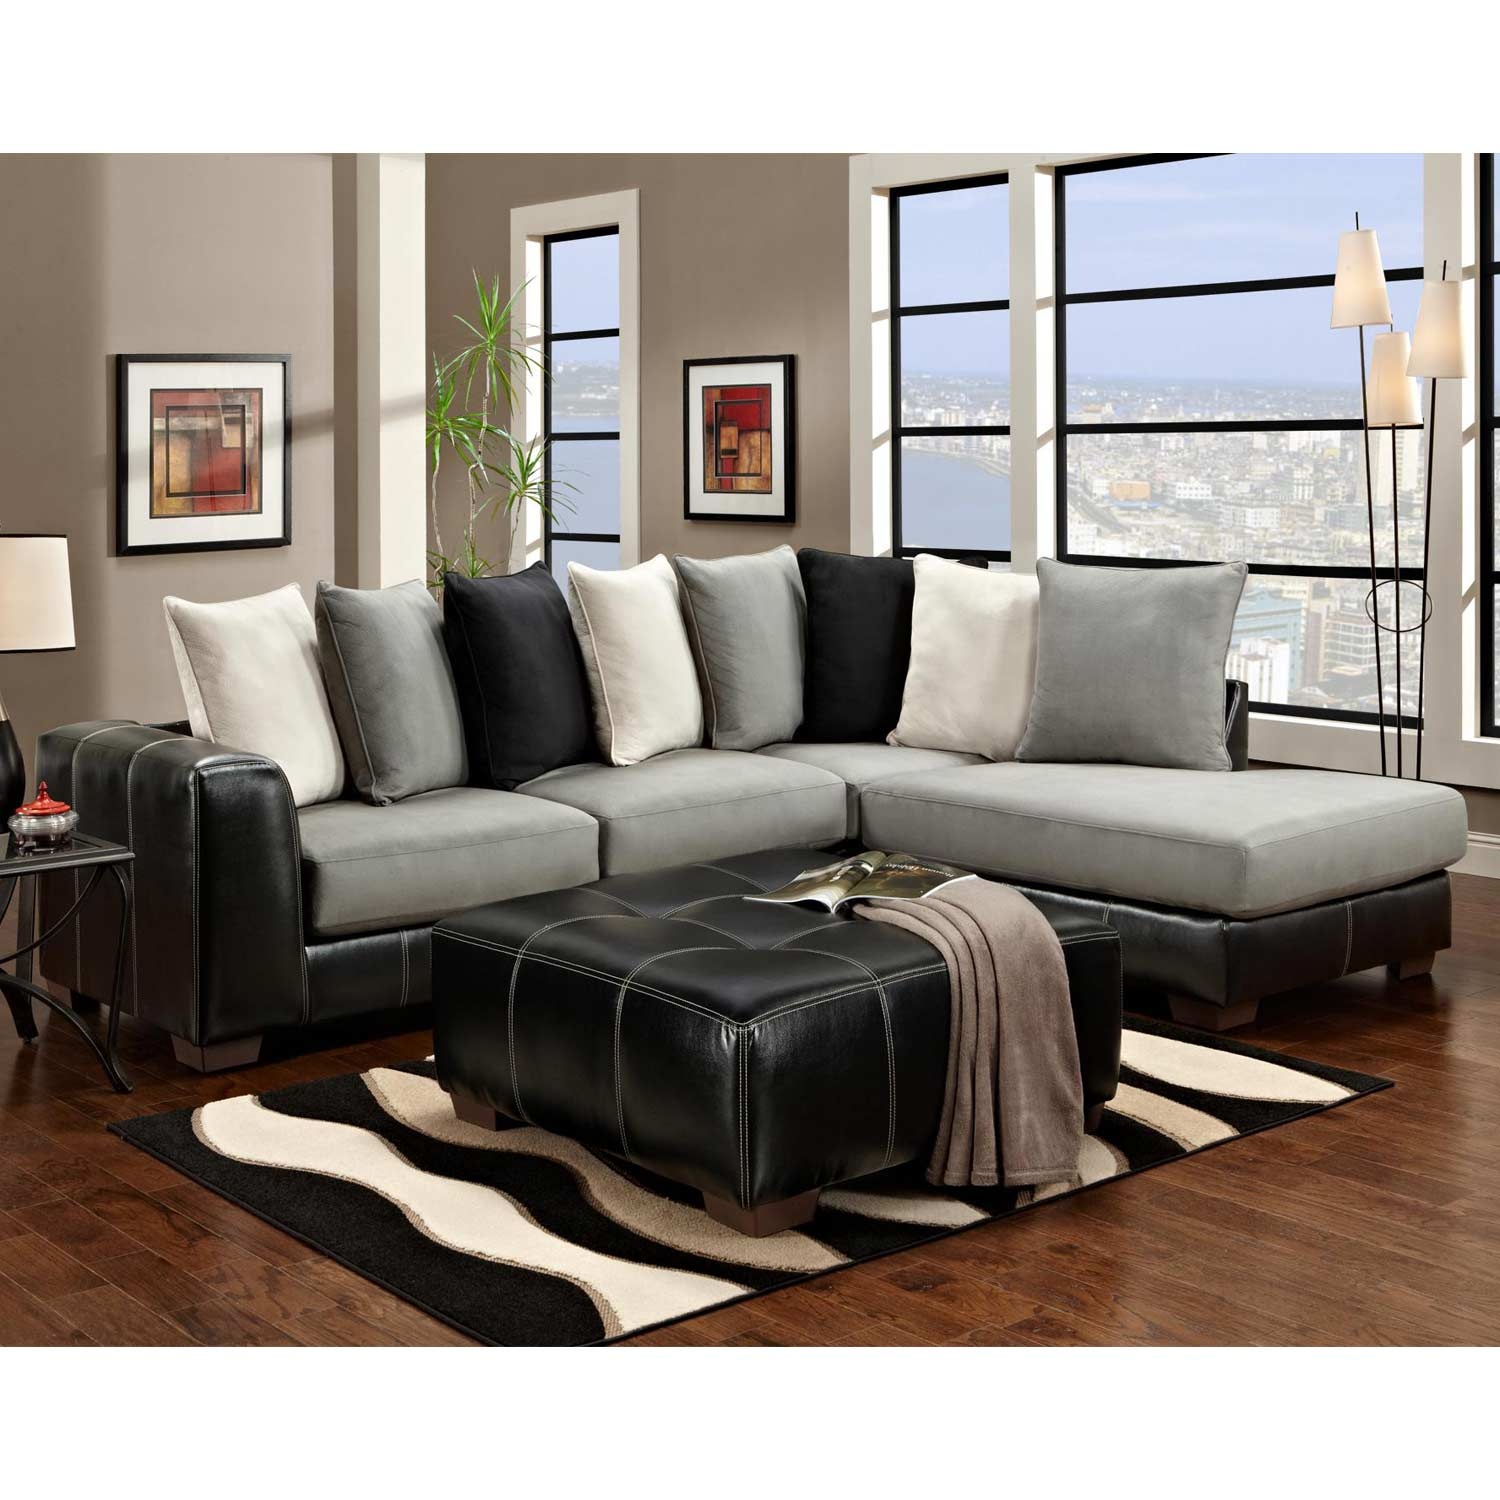 Landon Sectional Sofa & Chaise - Laredo Black